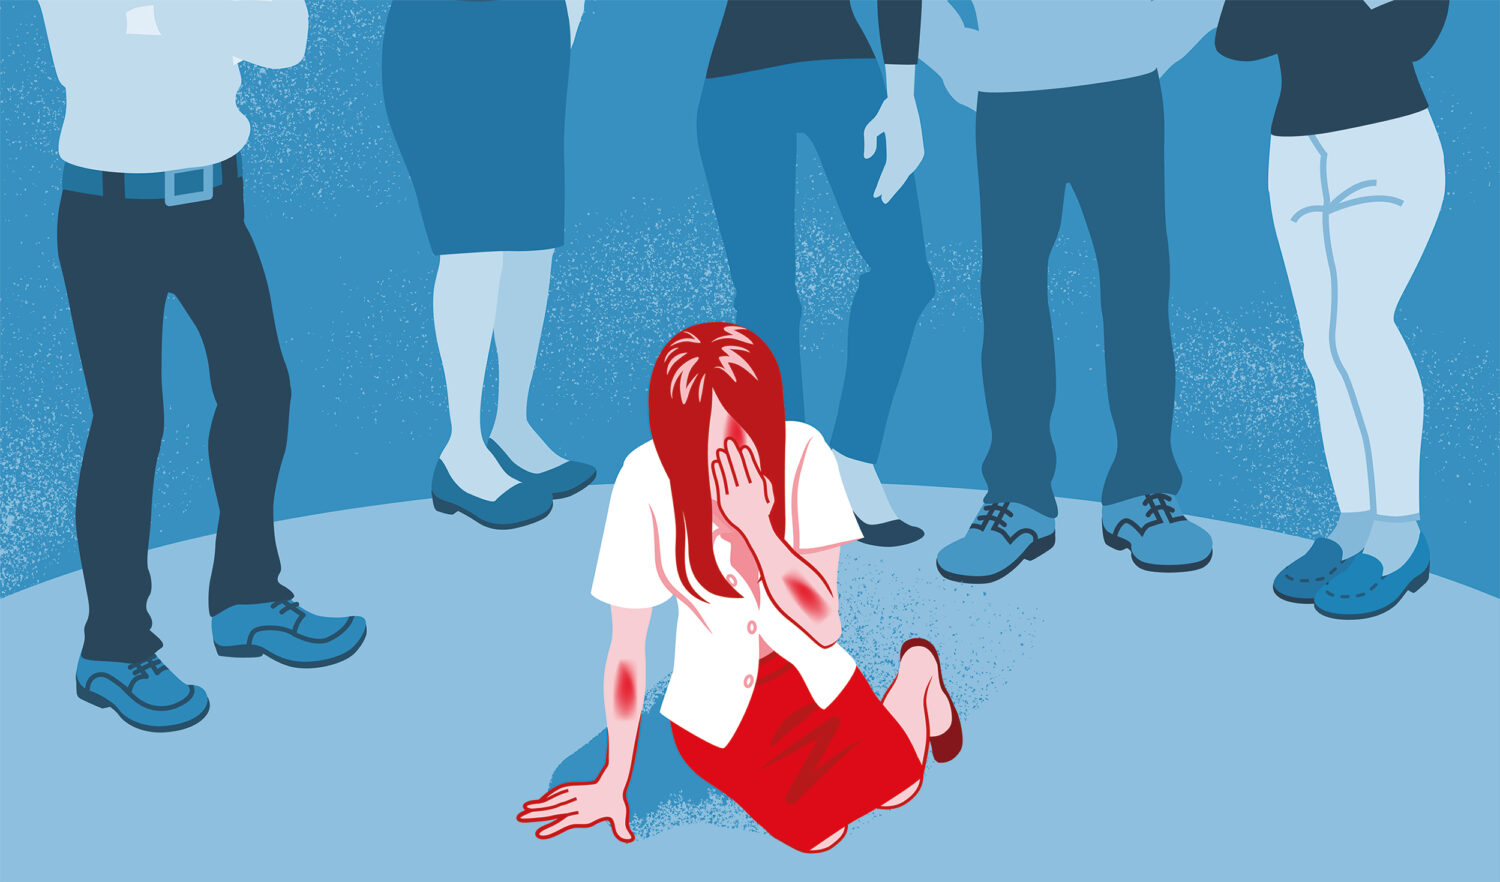 Illustration of a young woman on her knees with head in her hand, illustrated in red and the legs of 5 other people standing behind looking at her, the rest illustrated in blue.